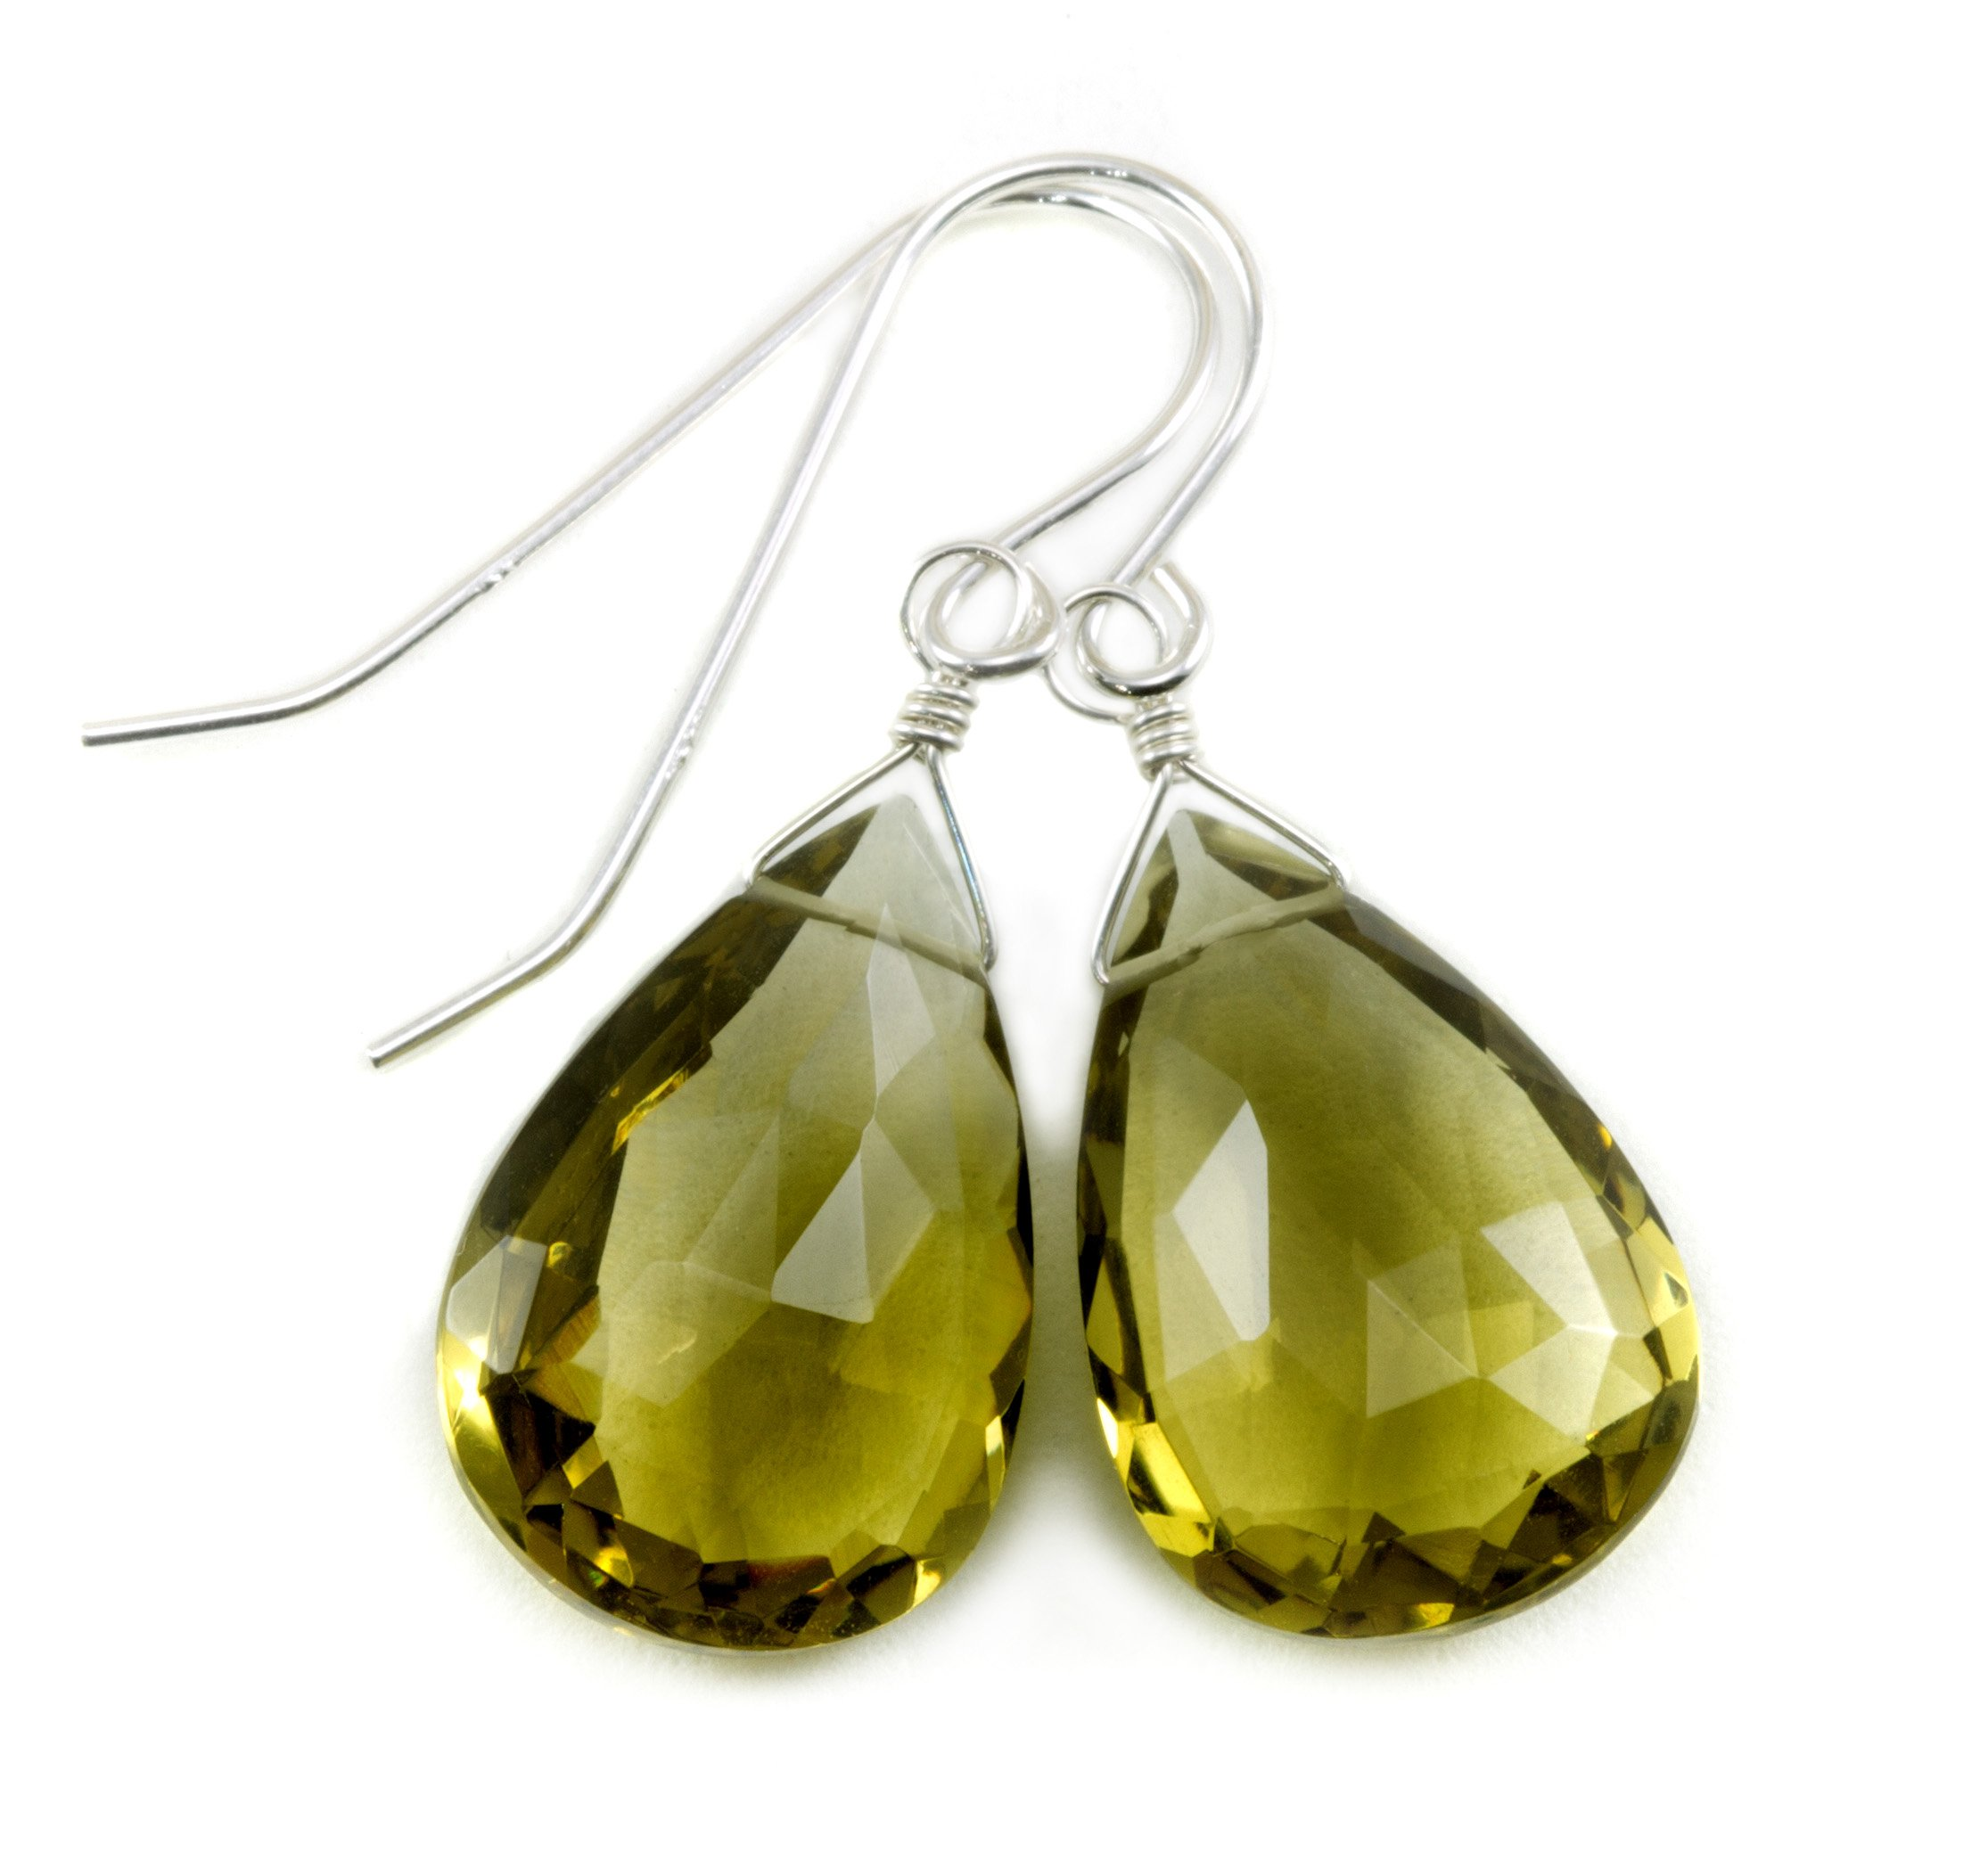 Sterling Silver Olive Green Quartz Earrings Faceted Briolette Large Teardrops by Spyglass Designs